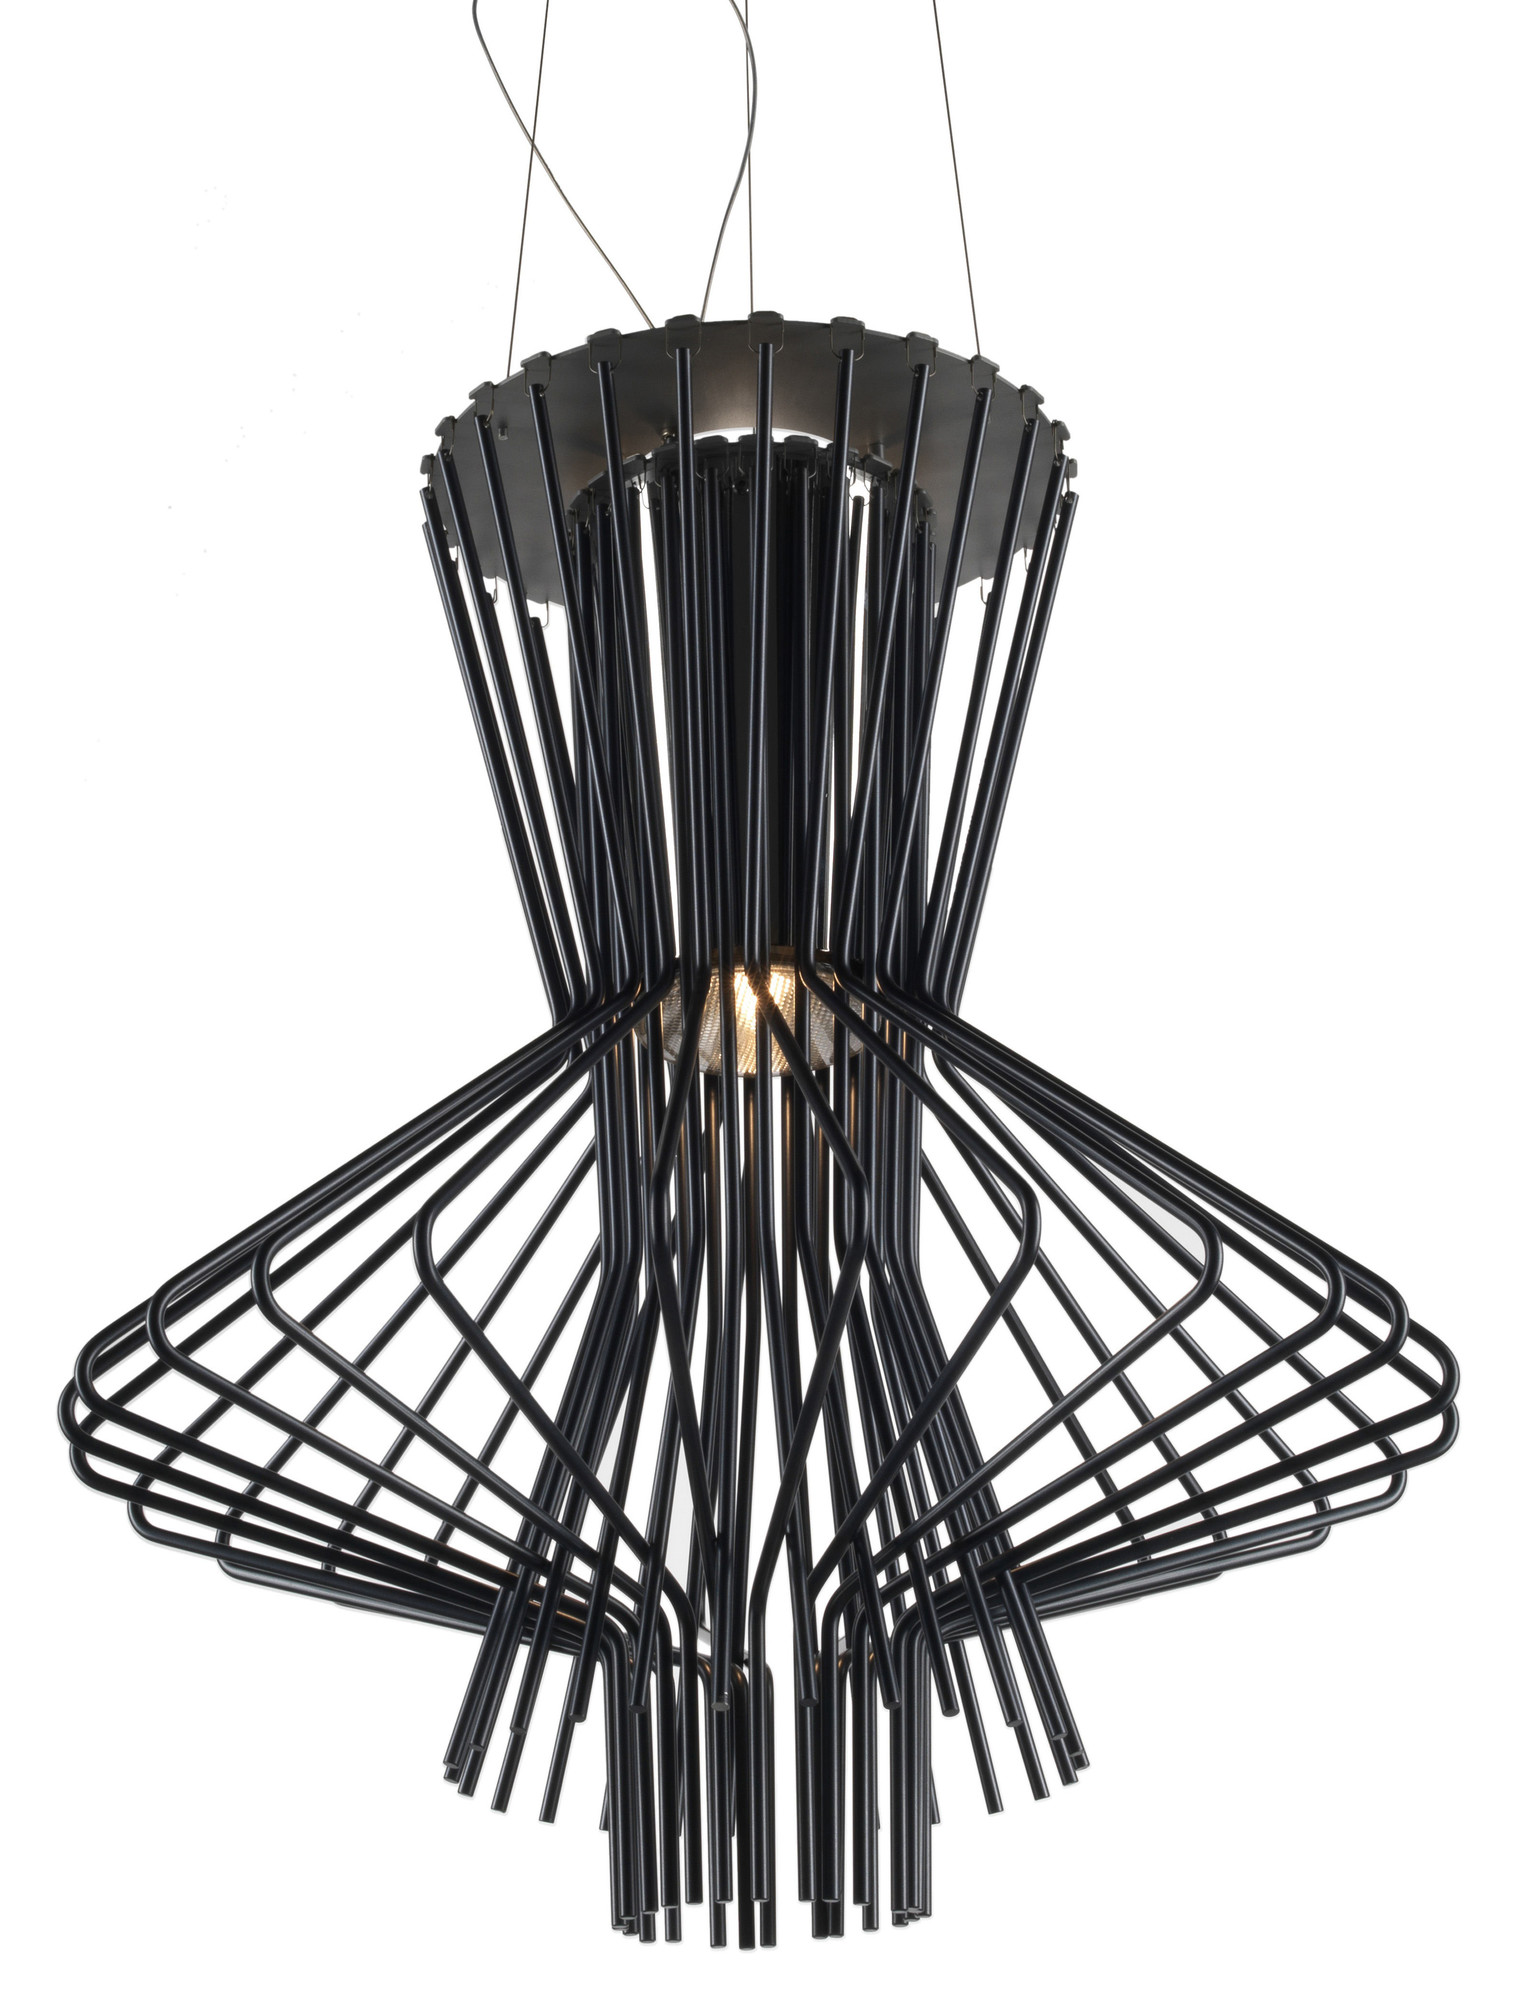 replica contemporary lighting fosani lamps. SKU #FOSL1024 Replica Foscarini Allegro Pendant Light By Atelier Oi Is Also Sometimes Listed Under The Following Manufacturer Numbers: FOS-PN6660 Contemporary Lighting Fosani Lamps 1